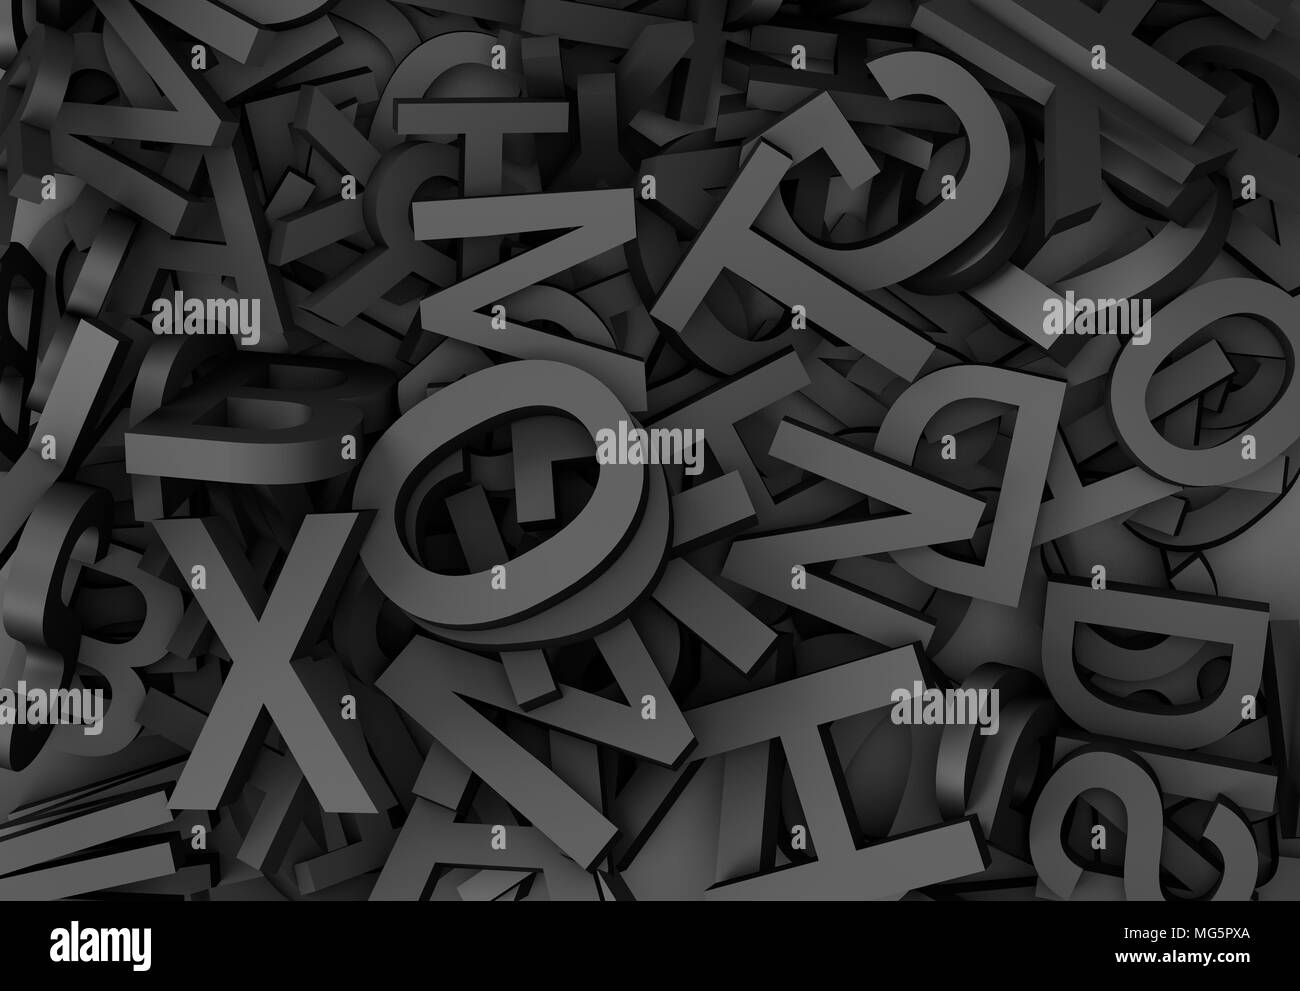 3d illustration horizontal closeup of black letters background texture - Stock Image